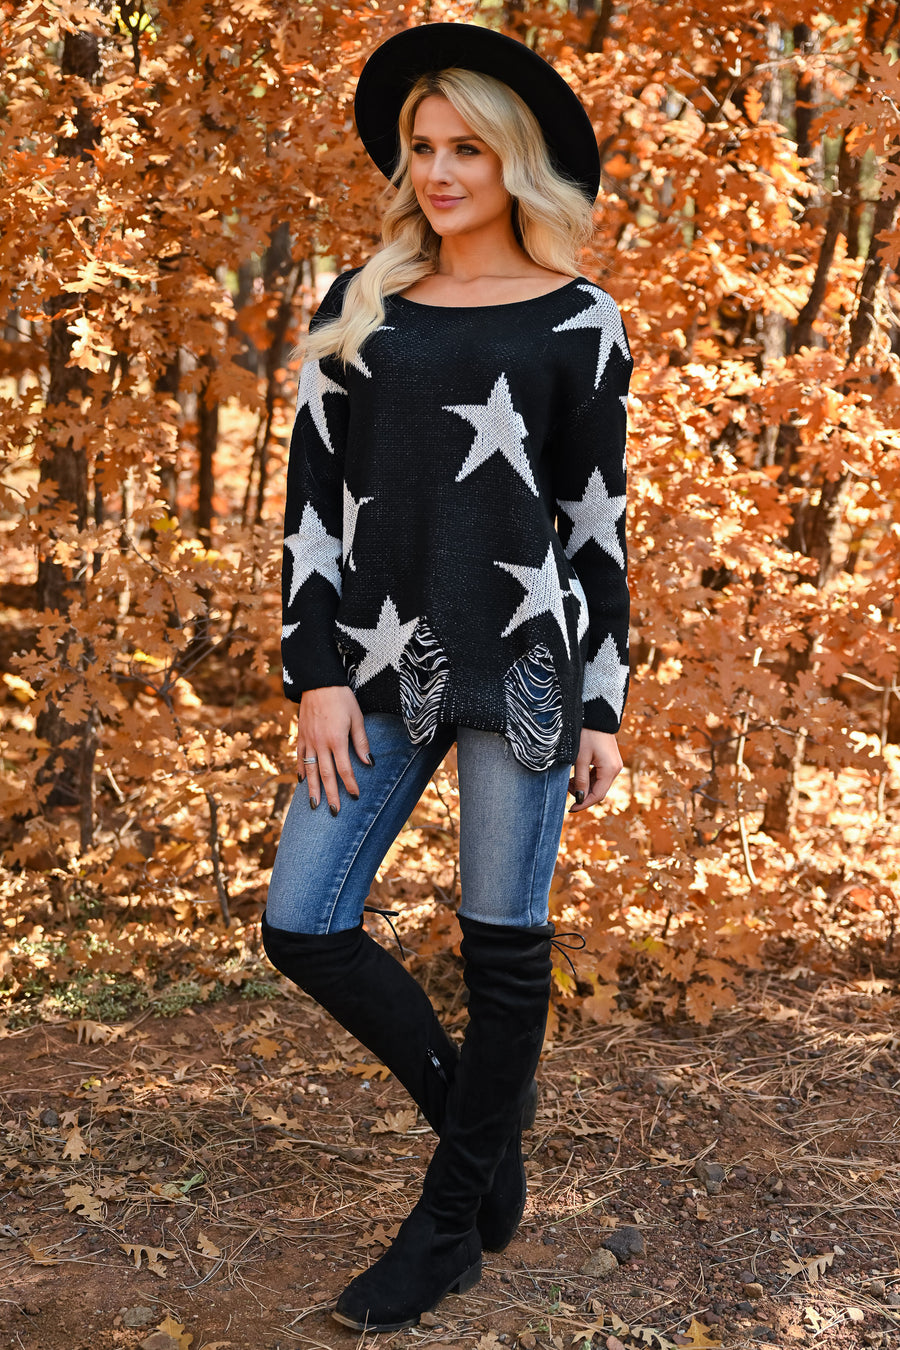 Stars Come Out Sweater - Black